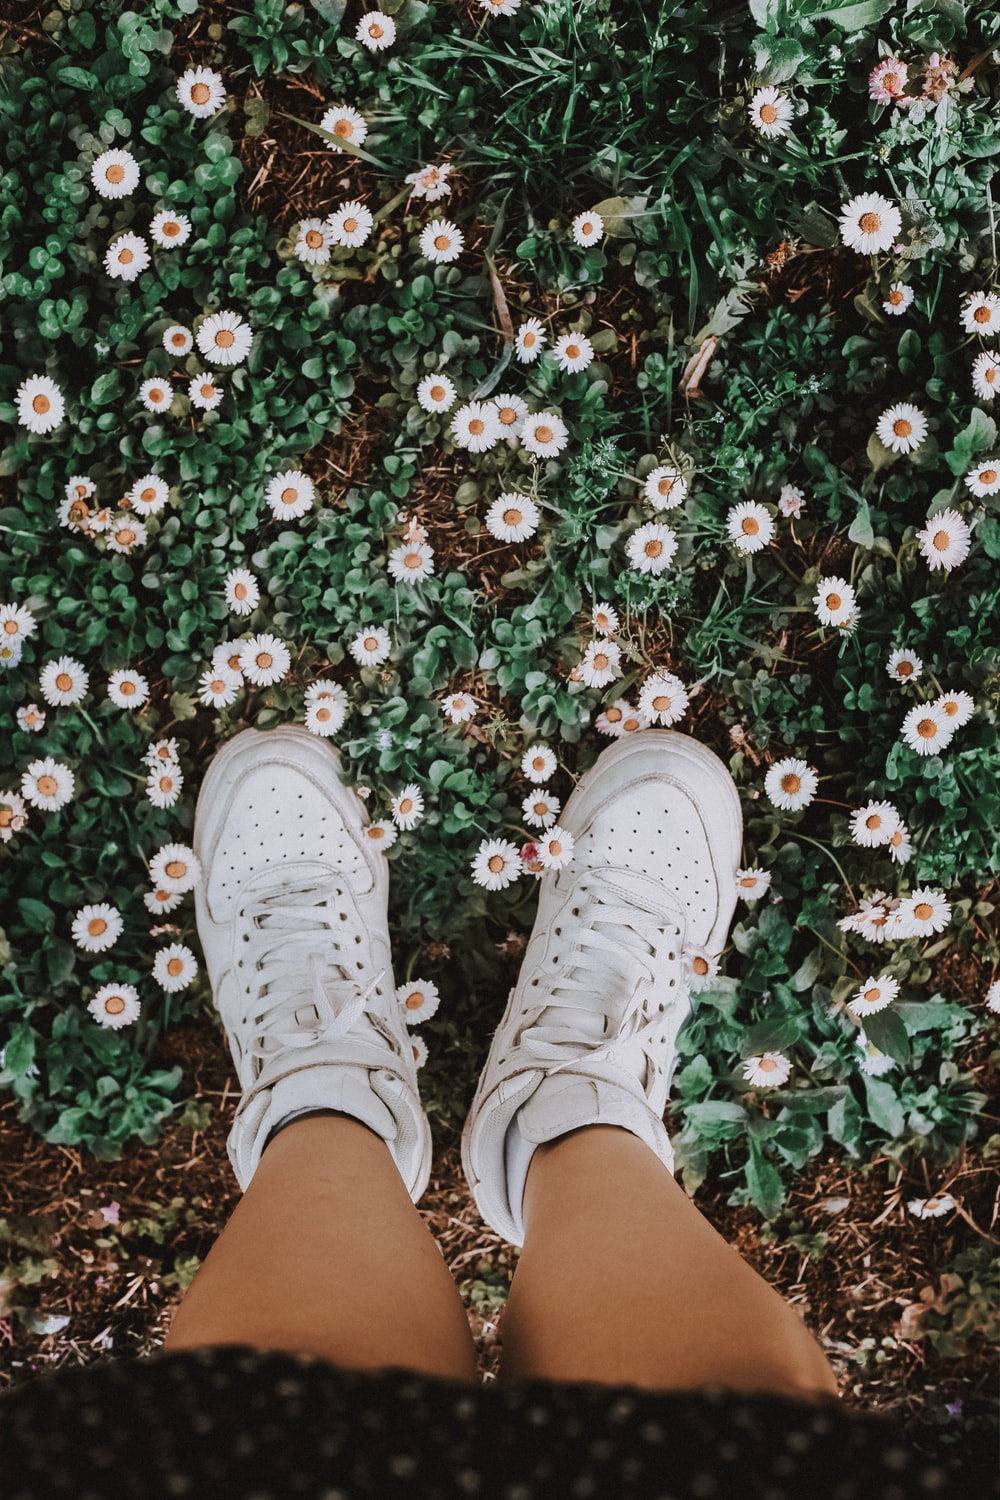 person in white sneakers standing on red and white flowers